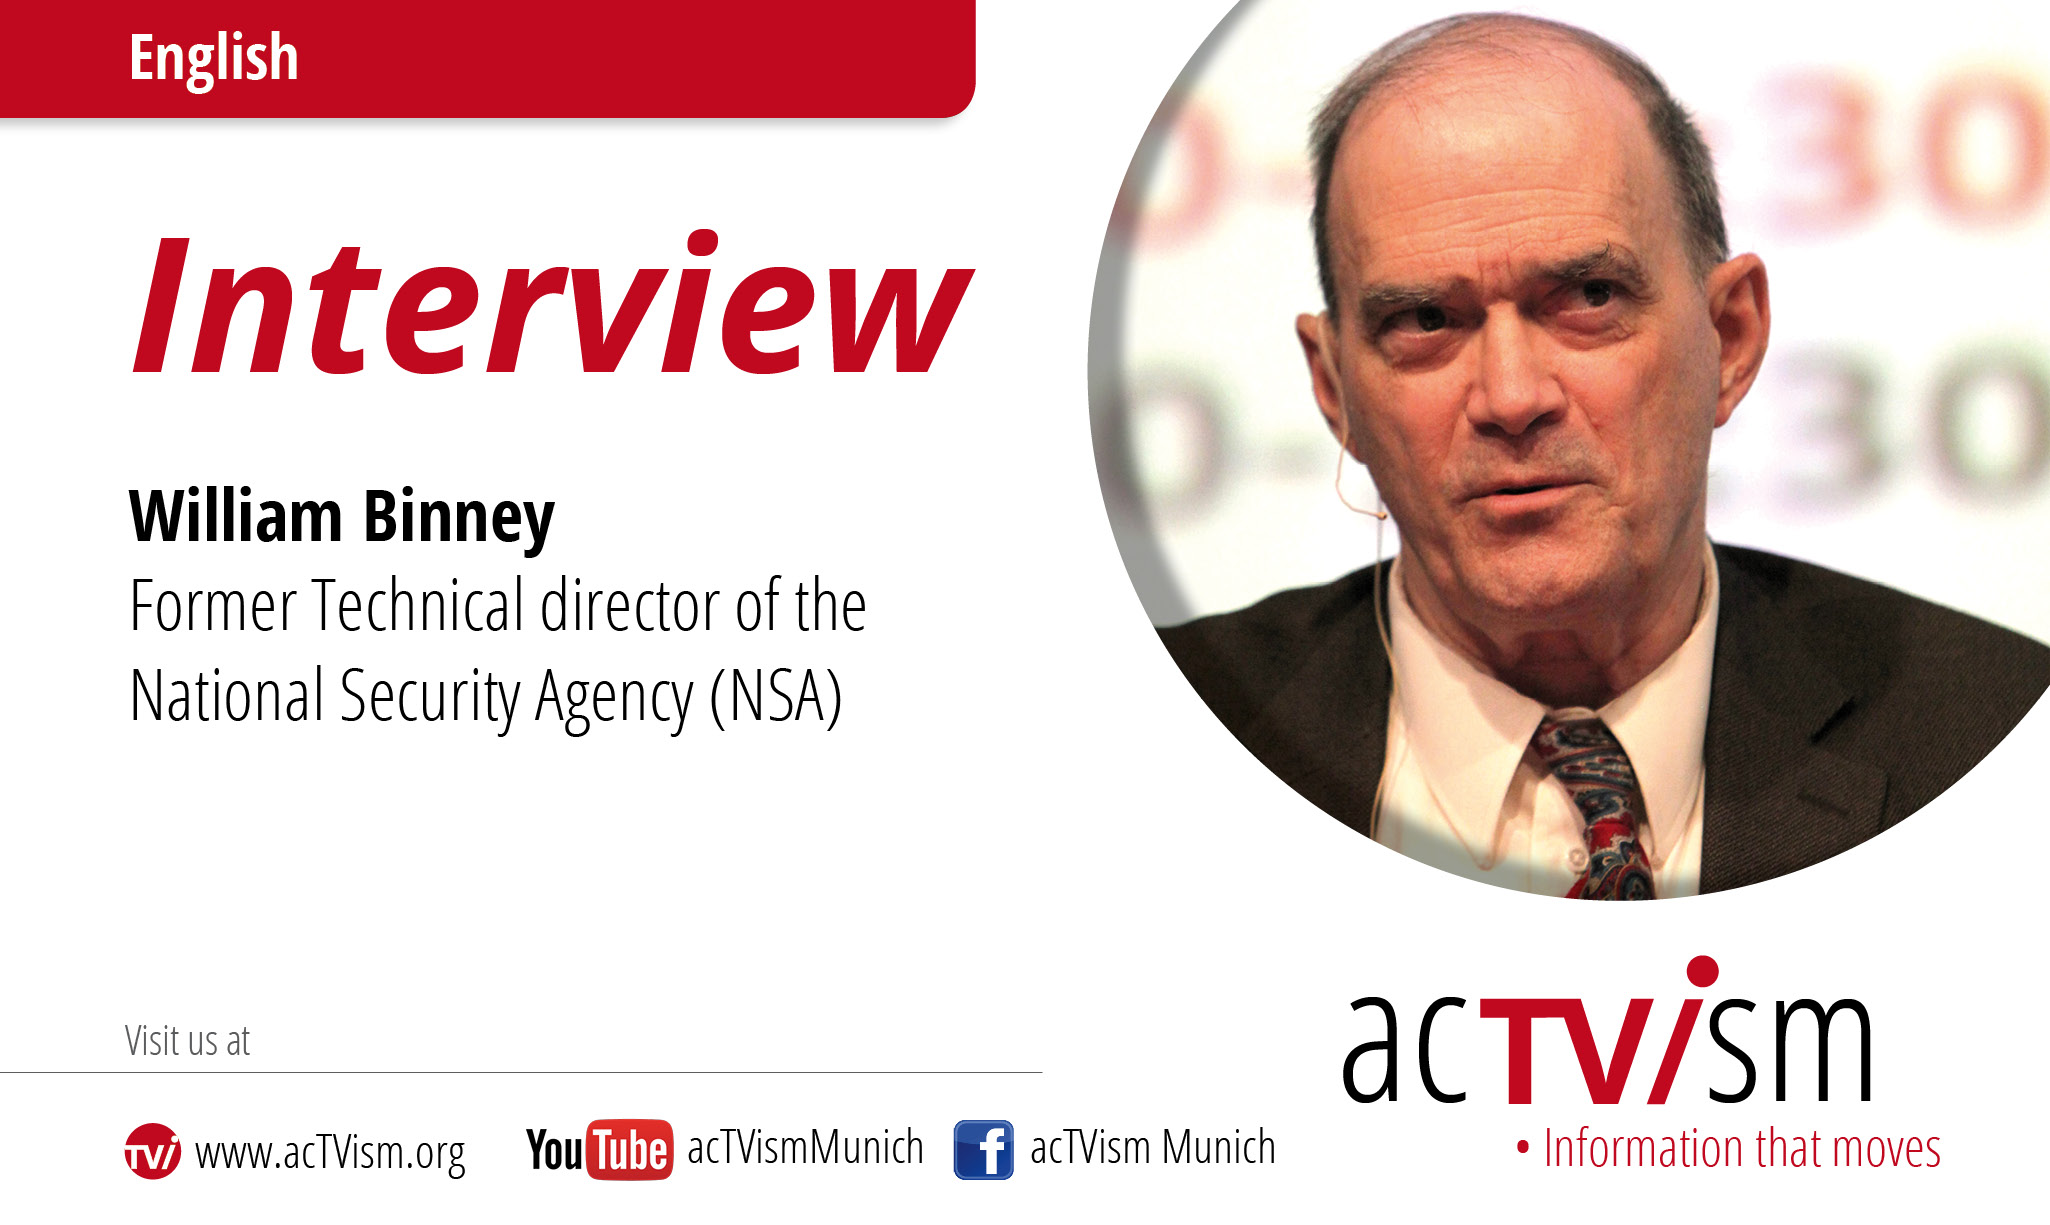 William Binney interview